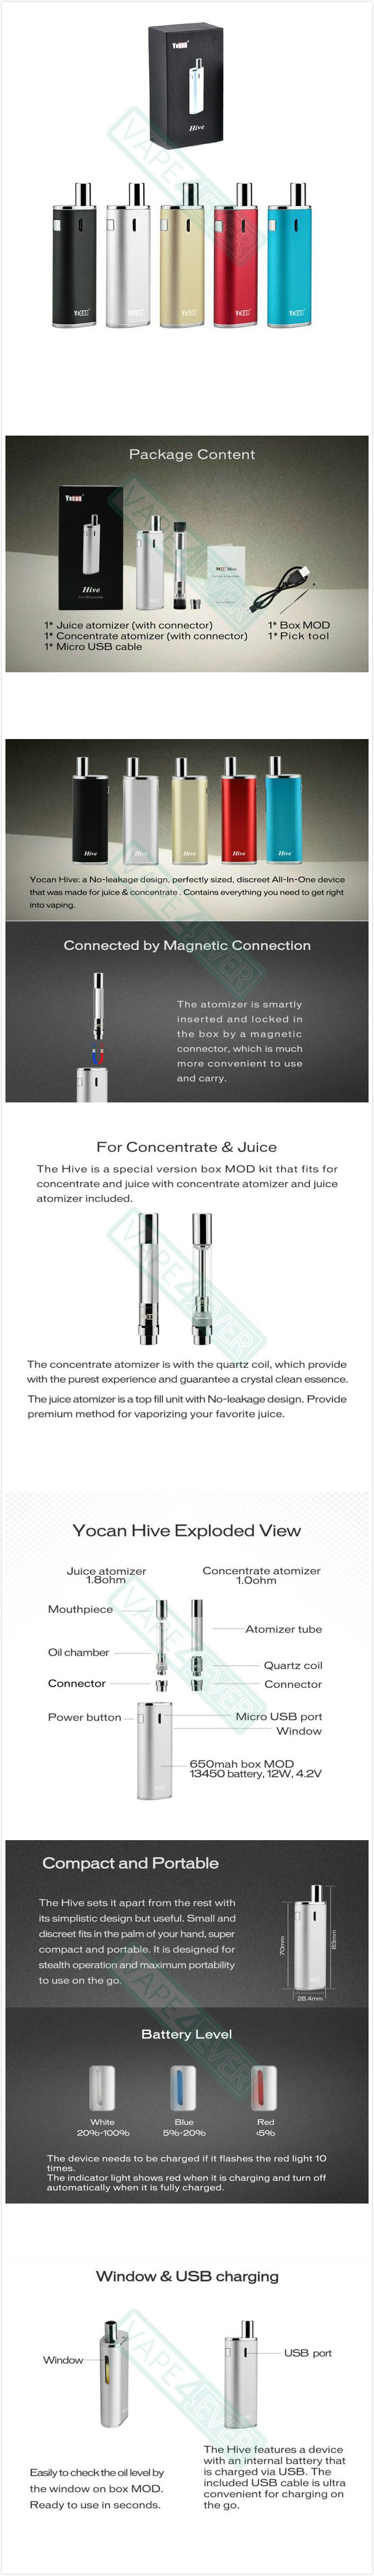 Yocan Hive AIO Starter Kit Magnetic Connection For E-juice/Concentrate Vaporizer Instruction